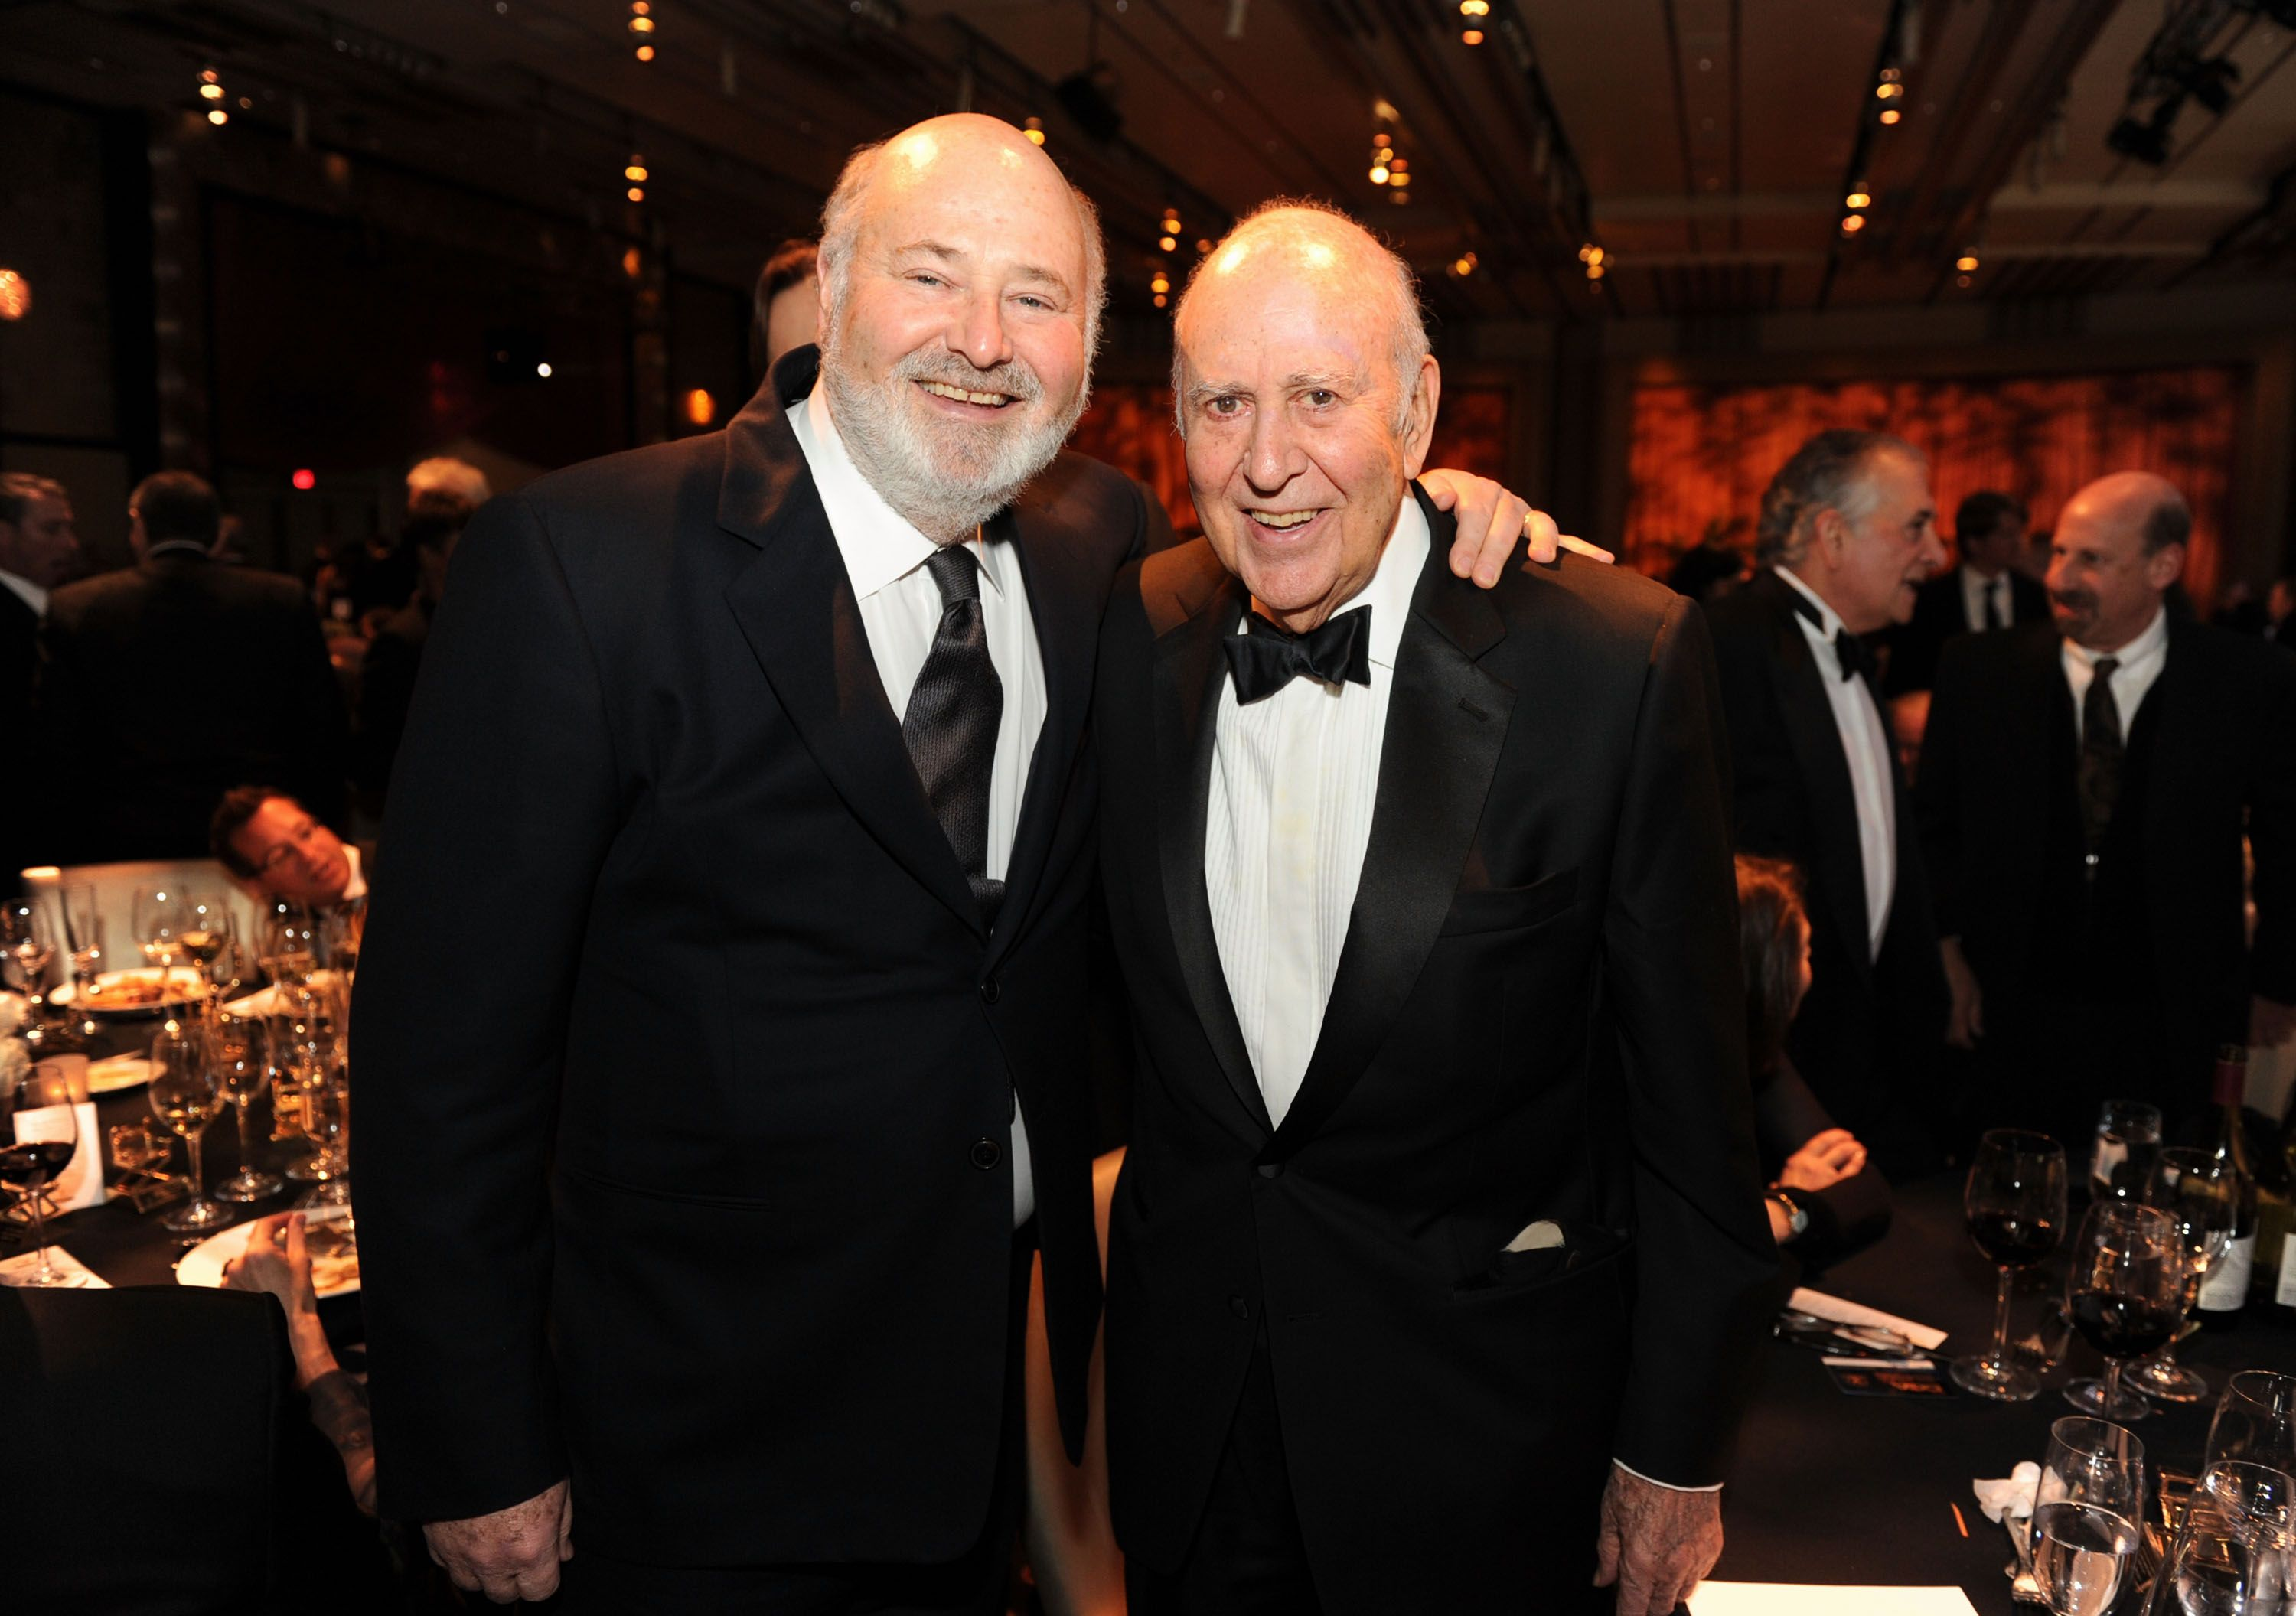 Rob Reiner and Carl Reiner at the 63rd Annual Directors Guild Of America Awards in 2011 in Hollywood | Source: Getty Images